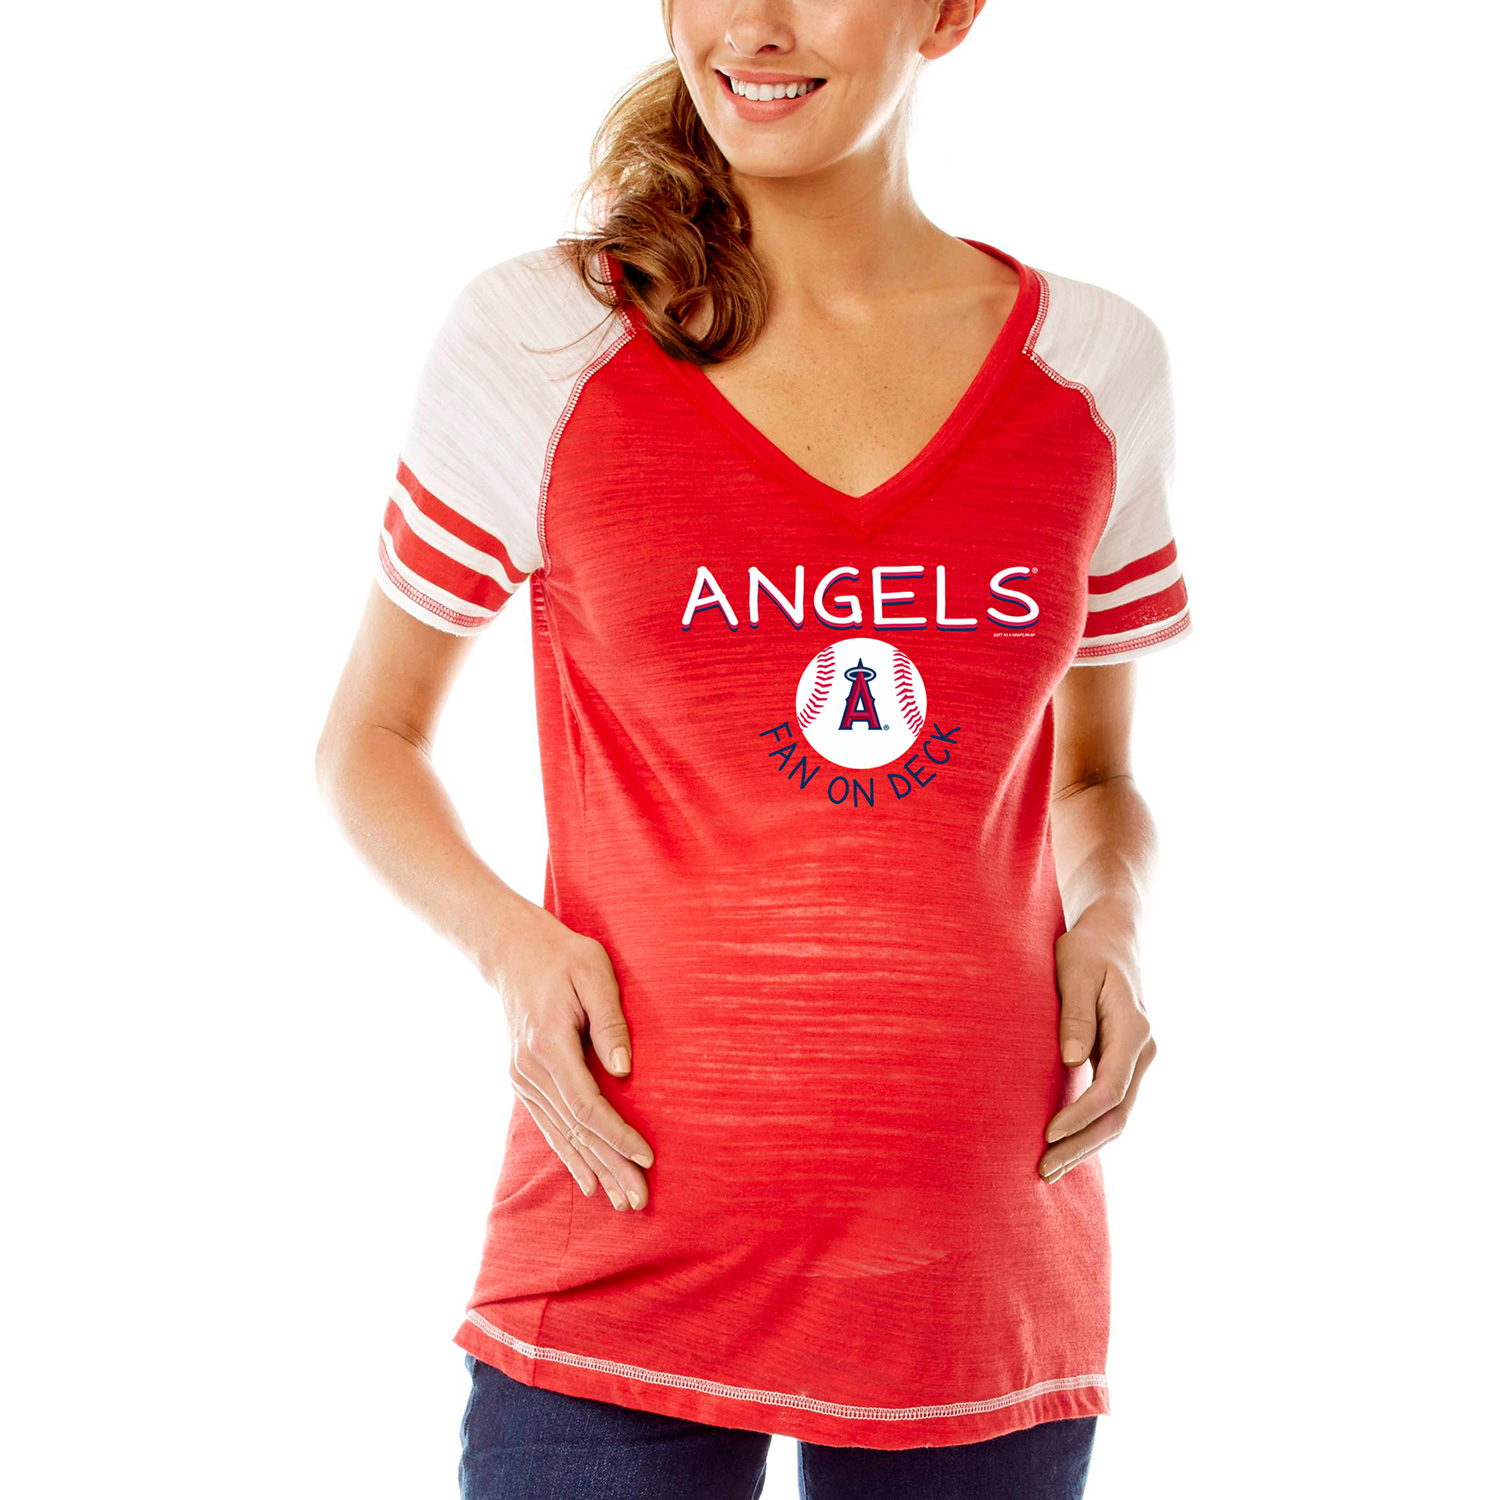 Los Angeles Angels Soft As A Grape Women's Maternity Leadoff Hitter Tri-Blend V-Neck Raglan Sleeve T-Shirt - Red